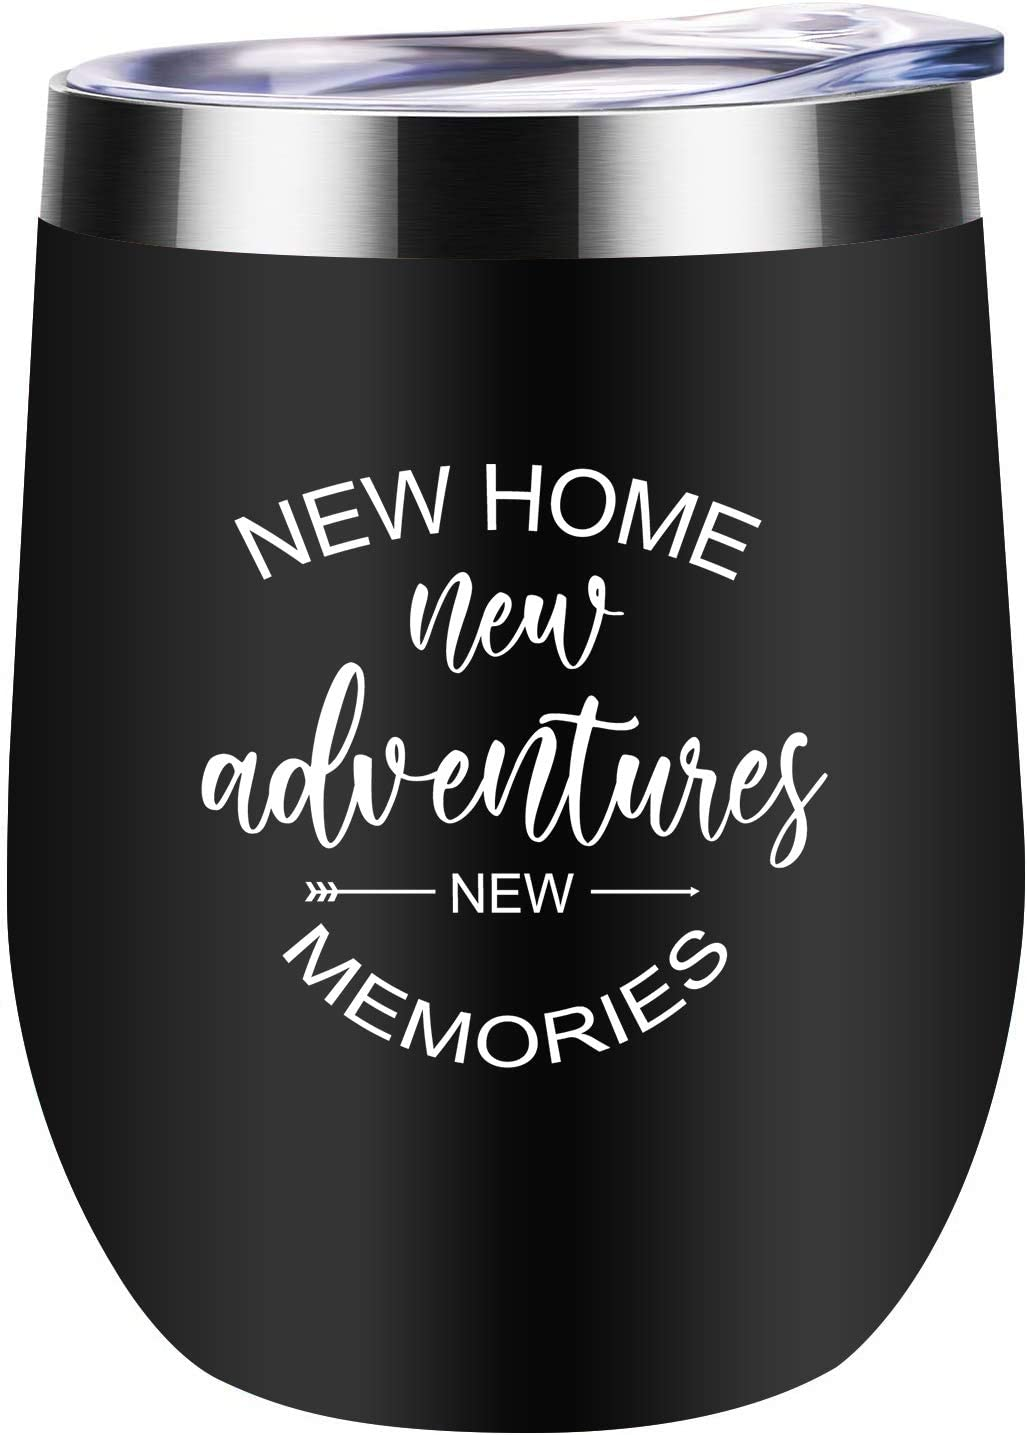 Housewarming Gifts For New Home Unique First Time House Owner Gift Ideas for Women Men Couple Best Friends Mom Wife Her Sister New Adventure New Memories Wine Tumbler 12oz (Black)